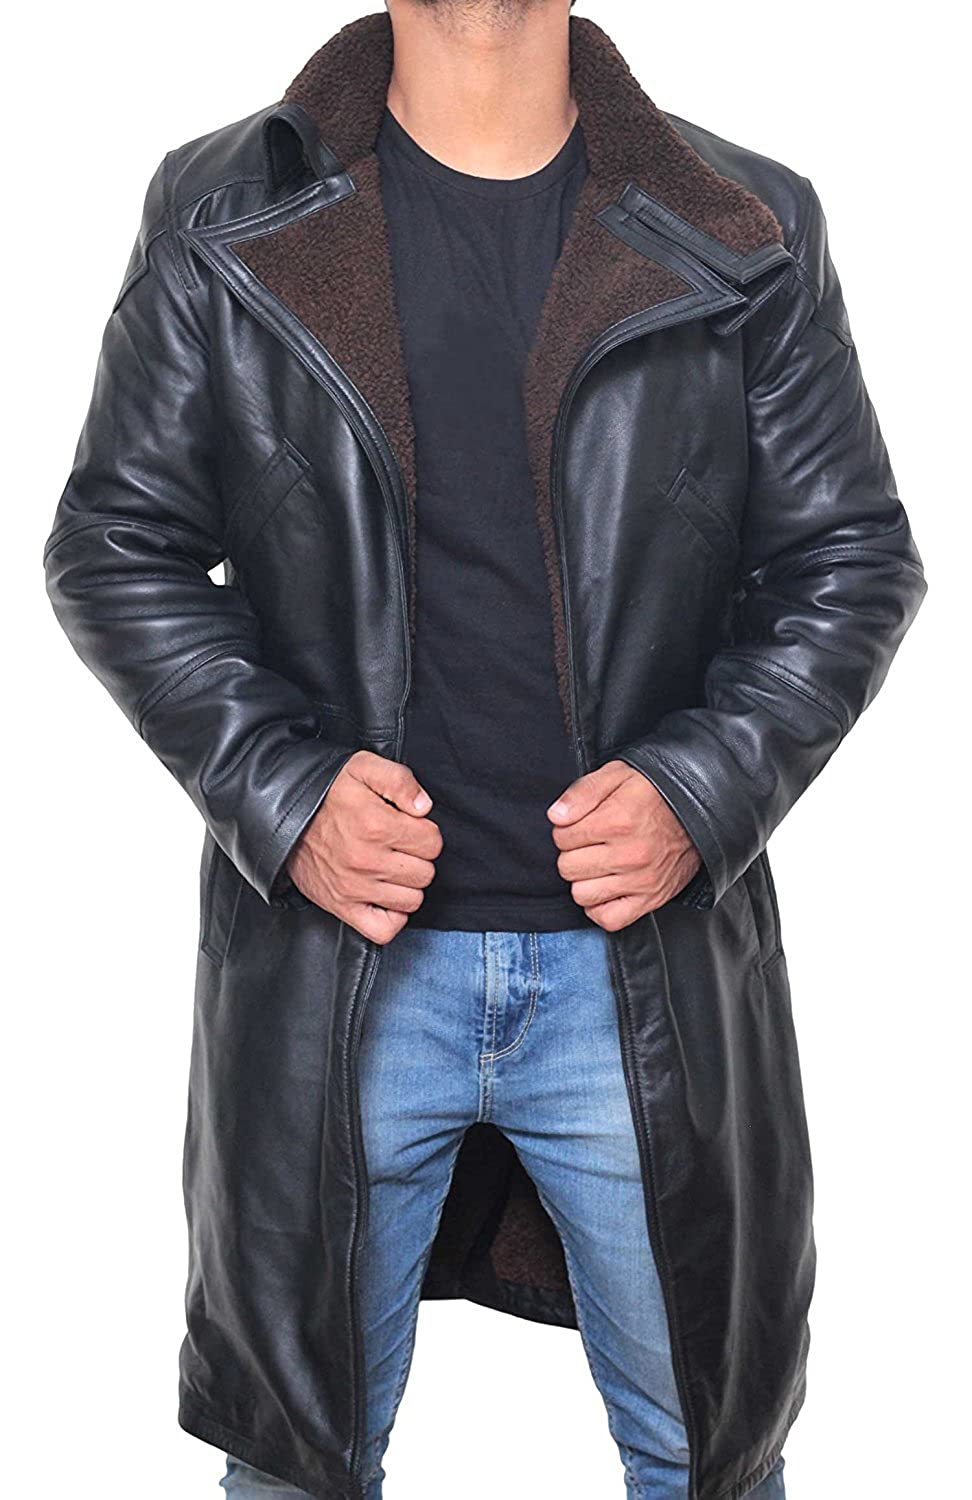 Blade Runner Trench Coat Men - Ryan Gosling Winter Shearling Jacket Coat for Men EL-Y1LF-4N9N